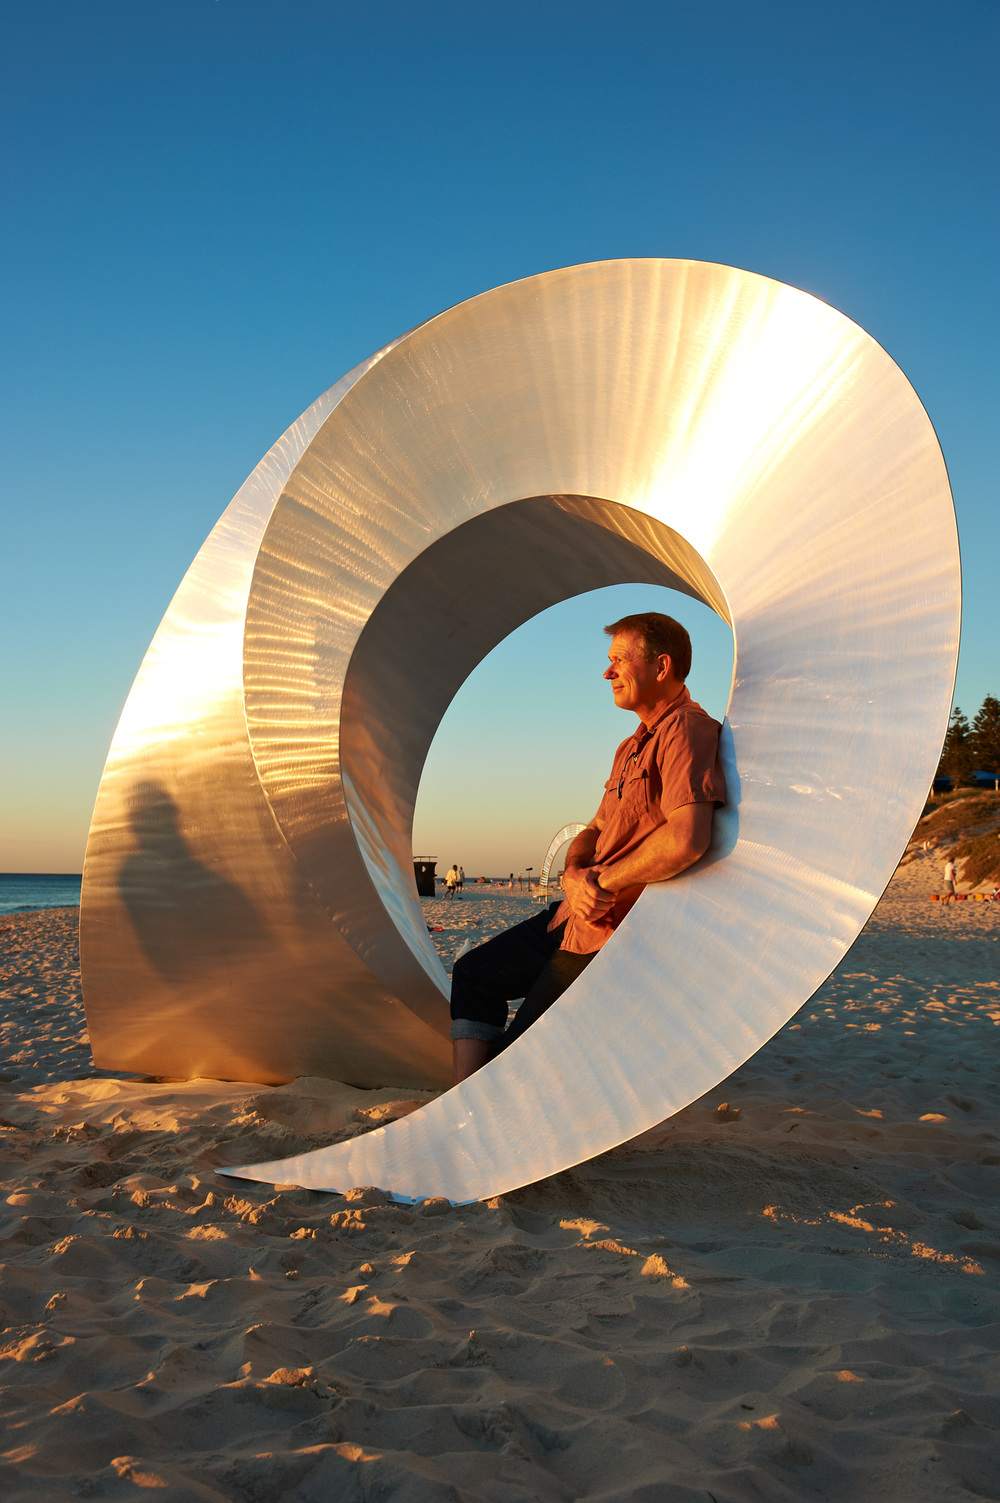 pannekoek_2012_convolution_sculpture_by_the_sea_02.jpg